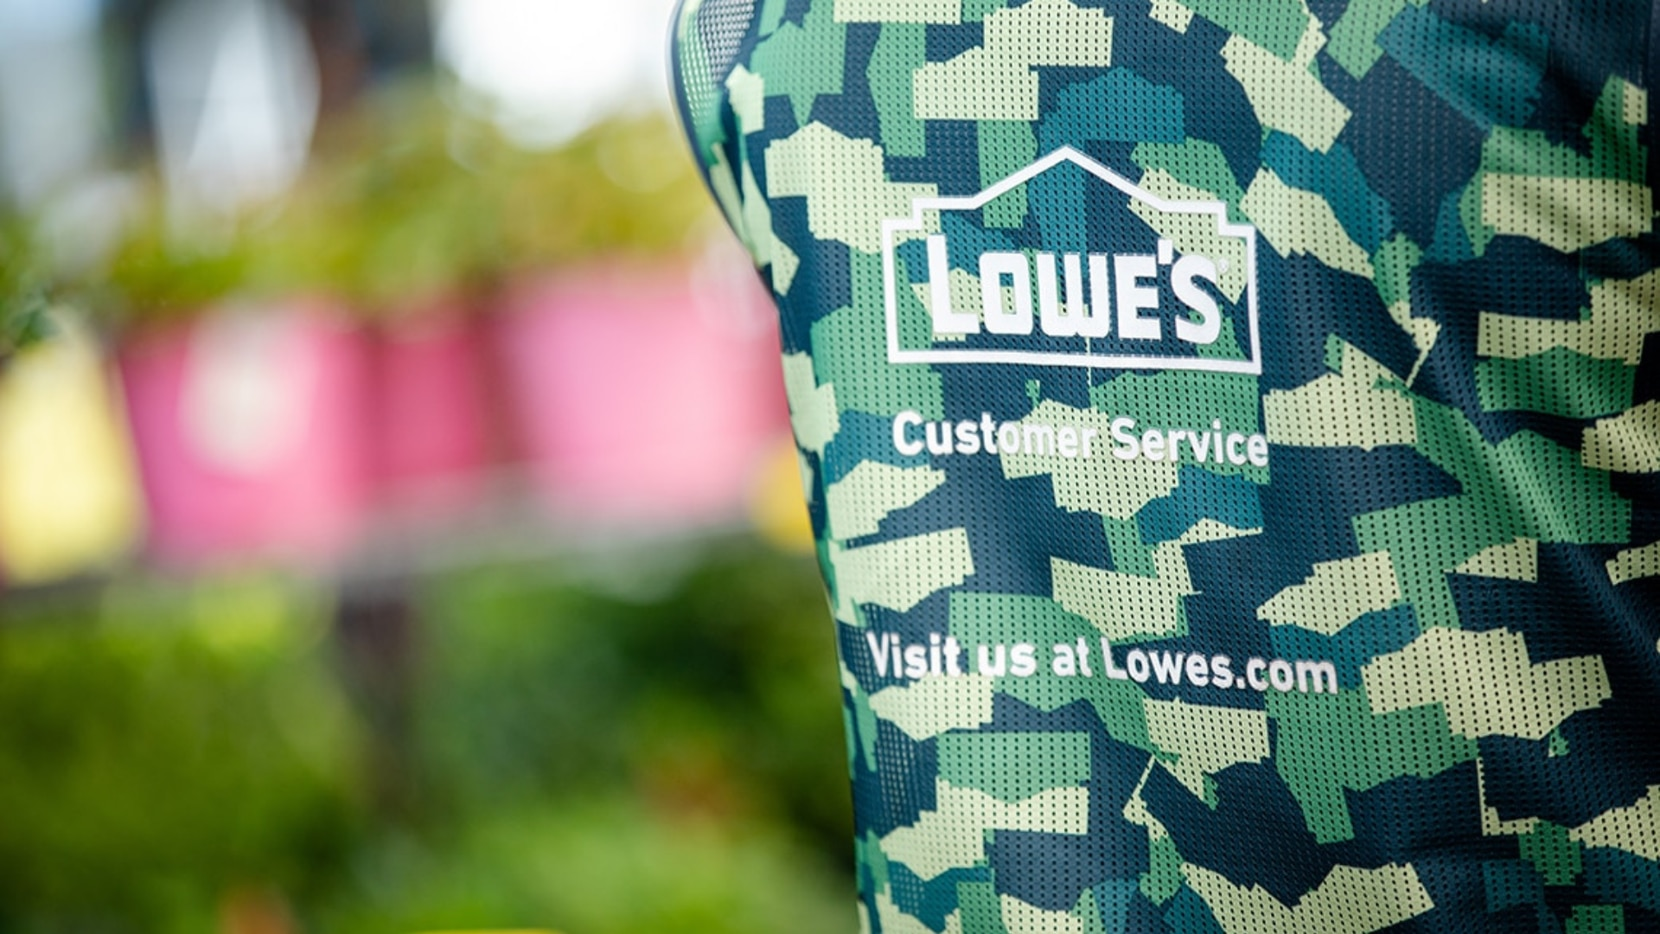 National retailer Lowe's celebrates its military associates and customers in many ways. One gesture is recognizing veteran employees by offering an optional camouflage vest to wear in celebration of their service.